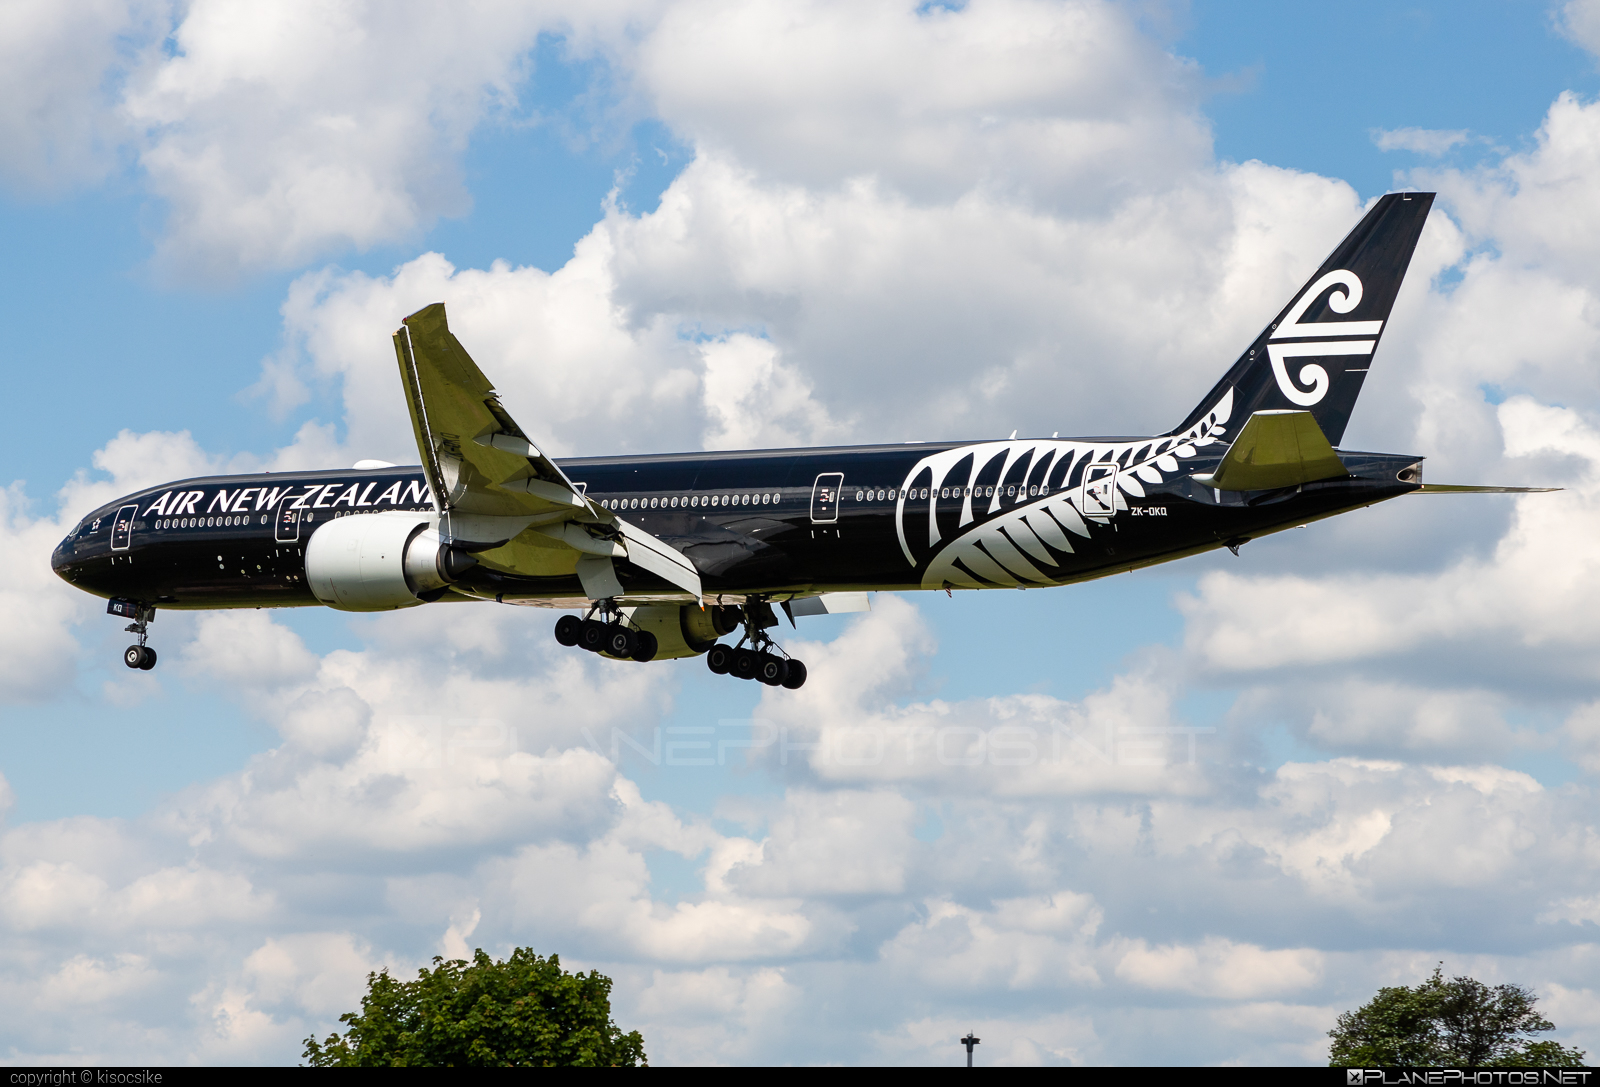 Boeing 777-300ER - ZK-OKQ operated by Air New Zealand #b777 #b777er #boeing #boeing777 #tripleseven